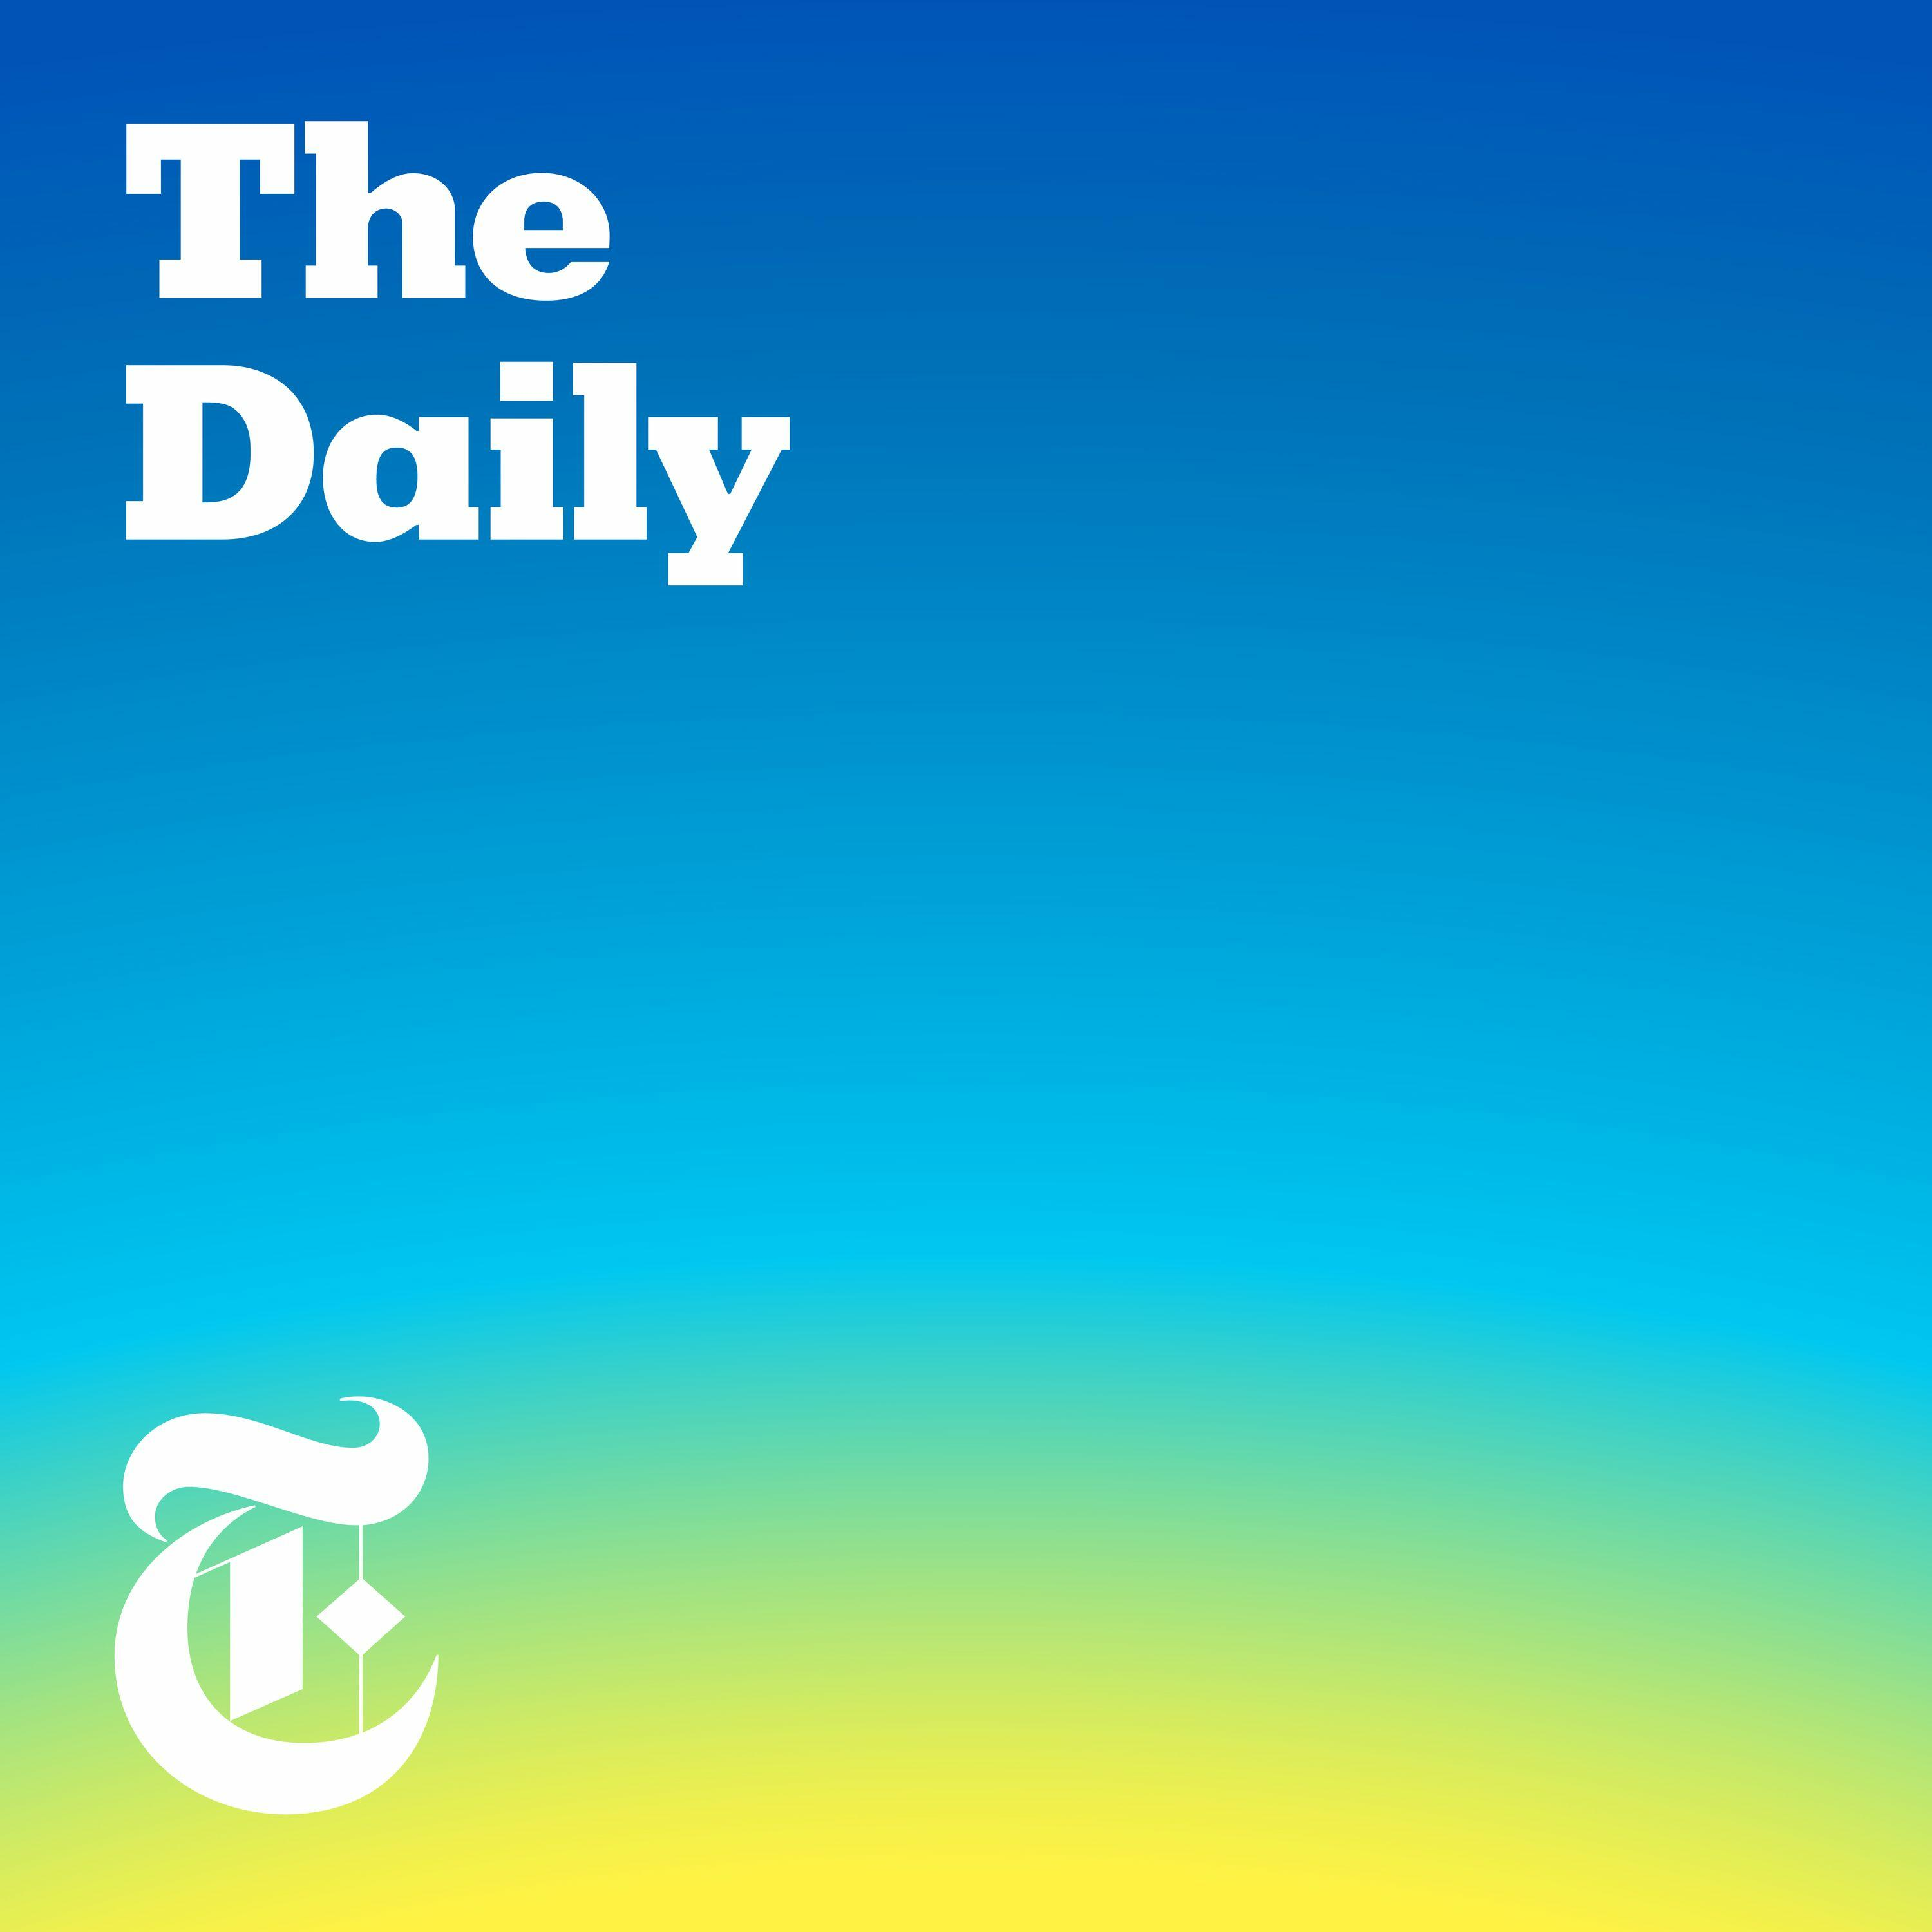 Listen to the The Daily Episode - Why Iran Is in Mourning on iHeartRadio | iHeartRadio